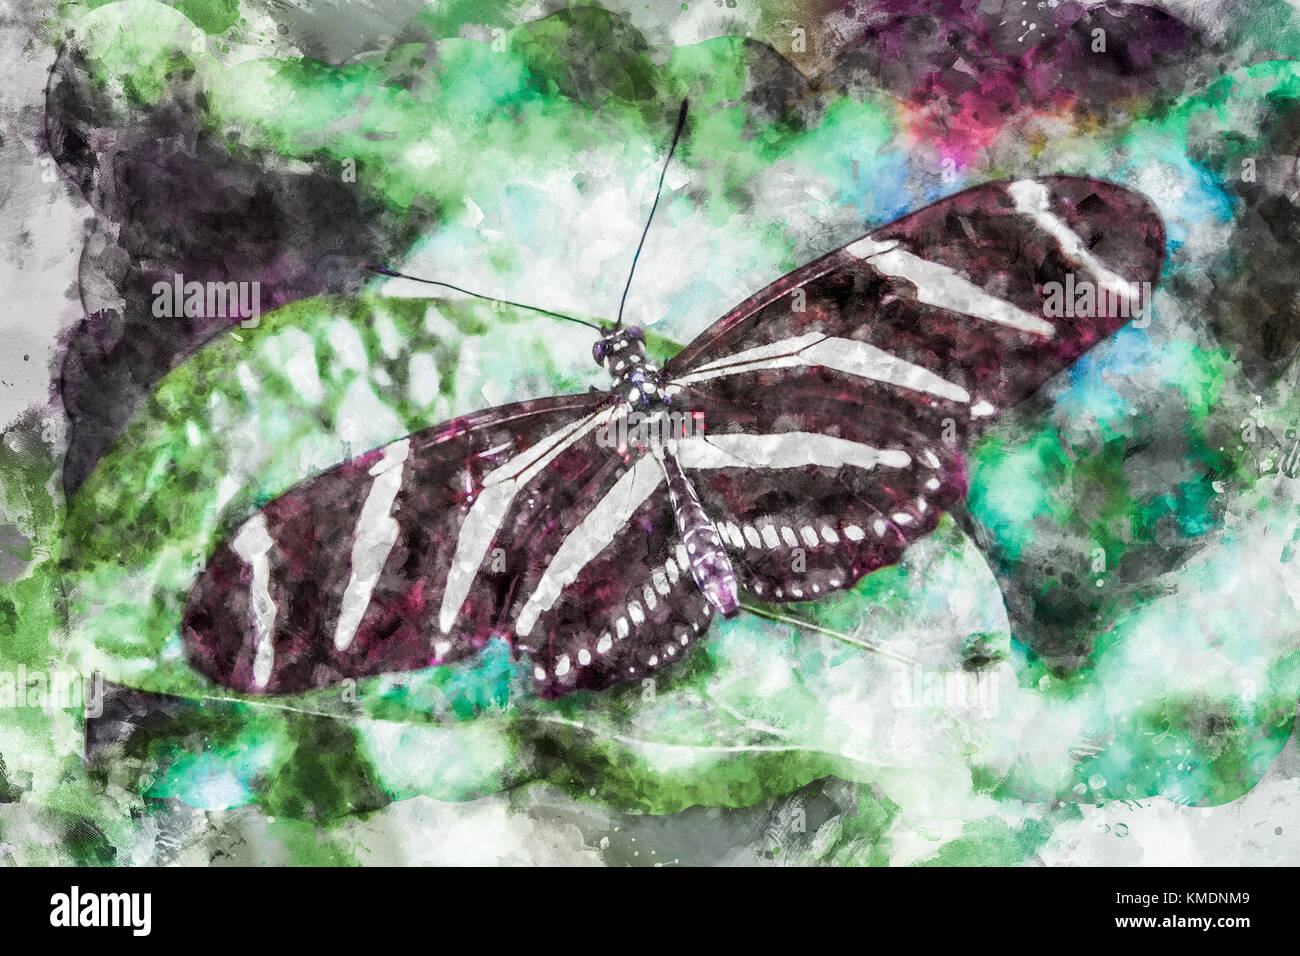 Watercolour illustration of adult Heliconius Charithonia (Zebra Longwing) butterfly Stock Photo